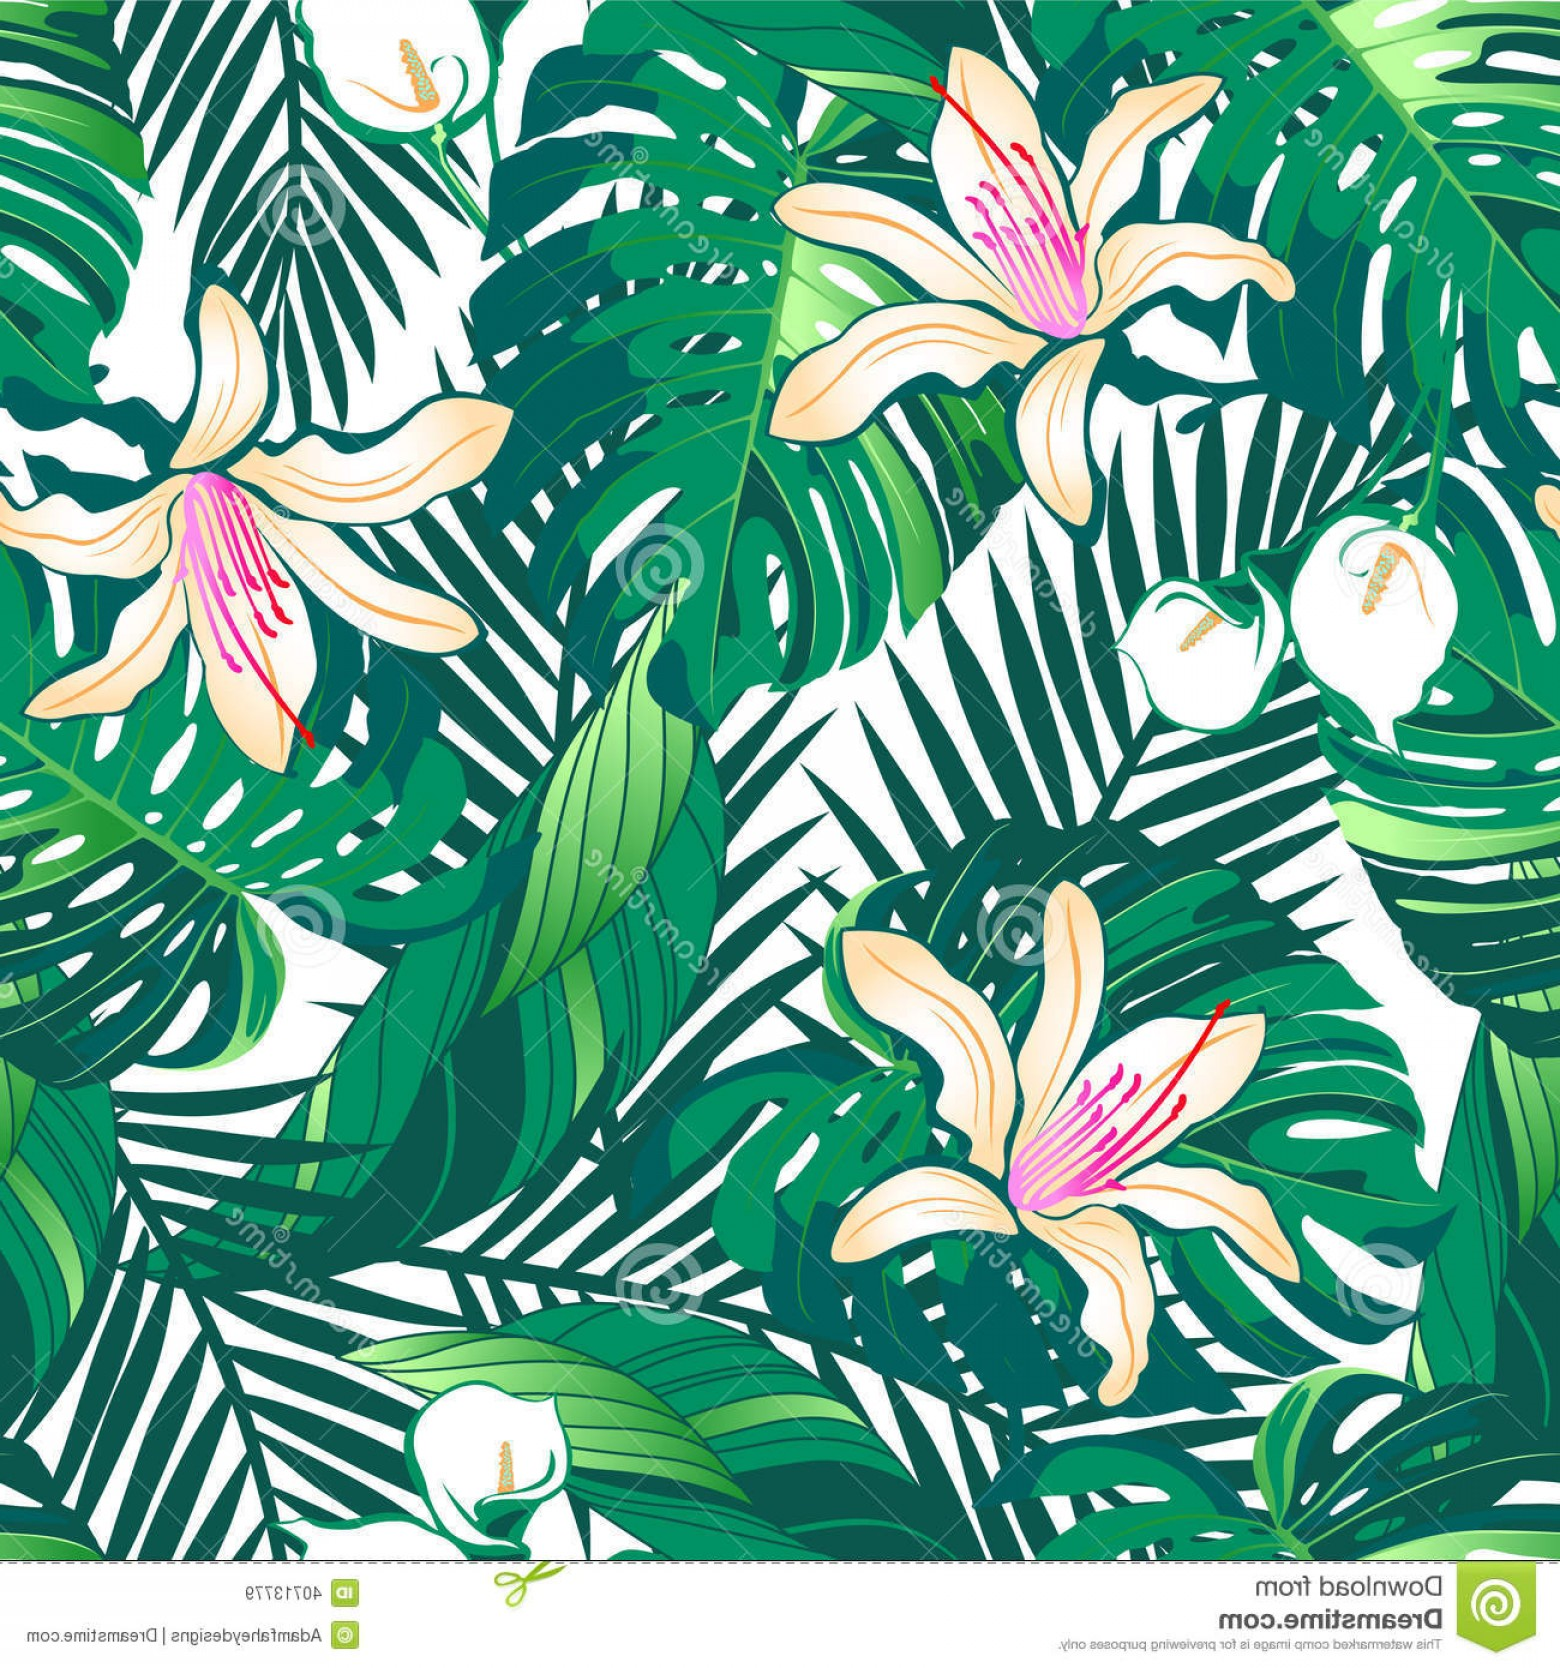 Hawaiian Flower Seamless Vector Pattern: Trendy Royalty Free Stock Images Tropical Lush Flowers Seamless Pattern White Background Image